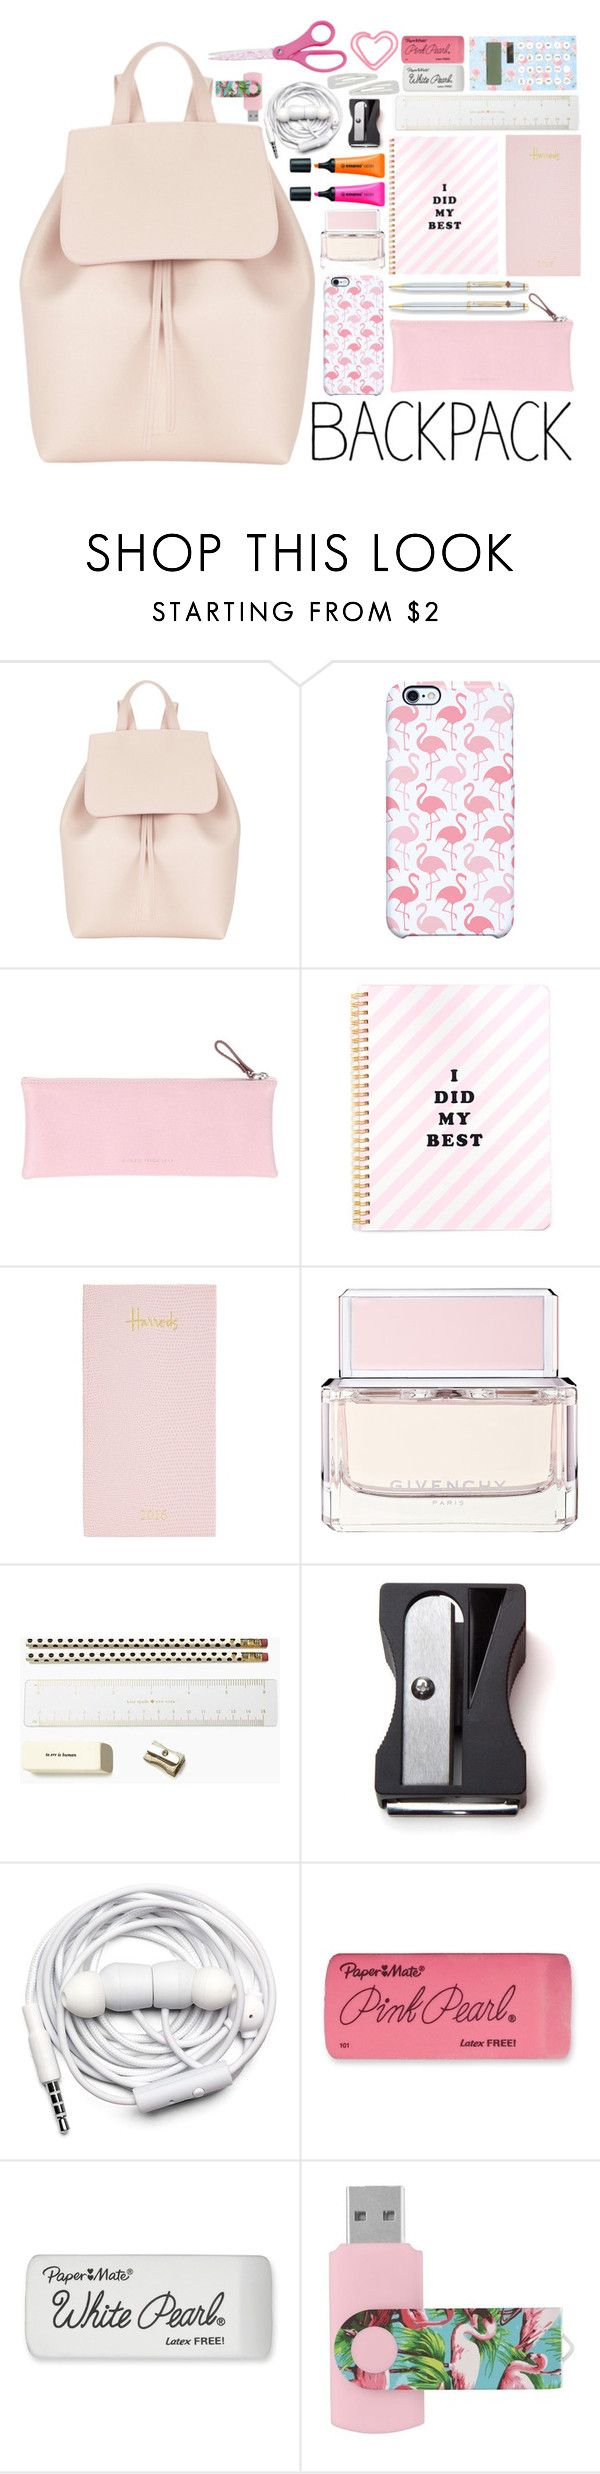 """""""back to school: What's in My Backpack?"""" by lisannes1 ❤ liked on Polyvore featuring interior, interiors, interior design, home, home decor, interior decorating, Mansur Gavriel, Uncommon, Giorgio Fedon 1919 and Harrods"""